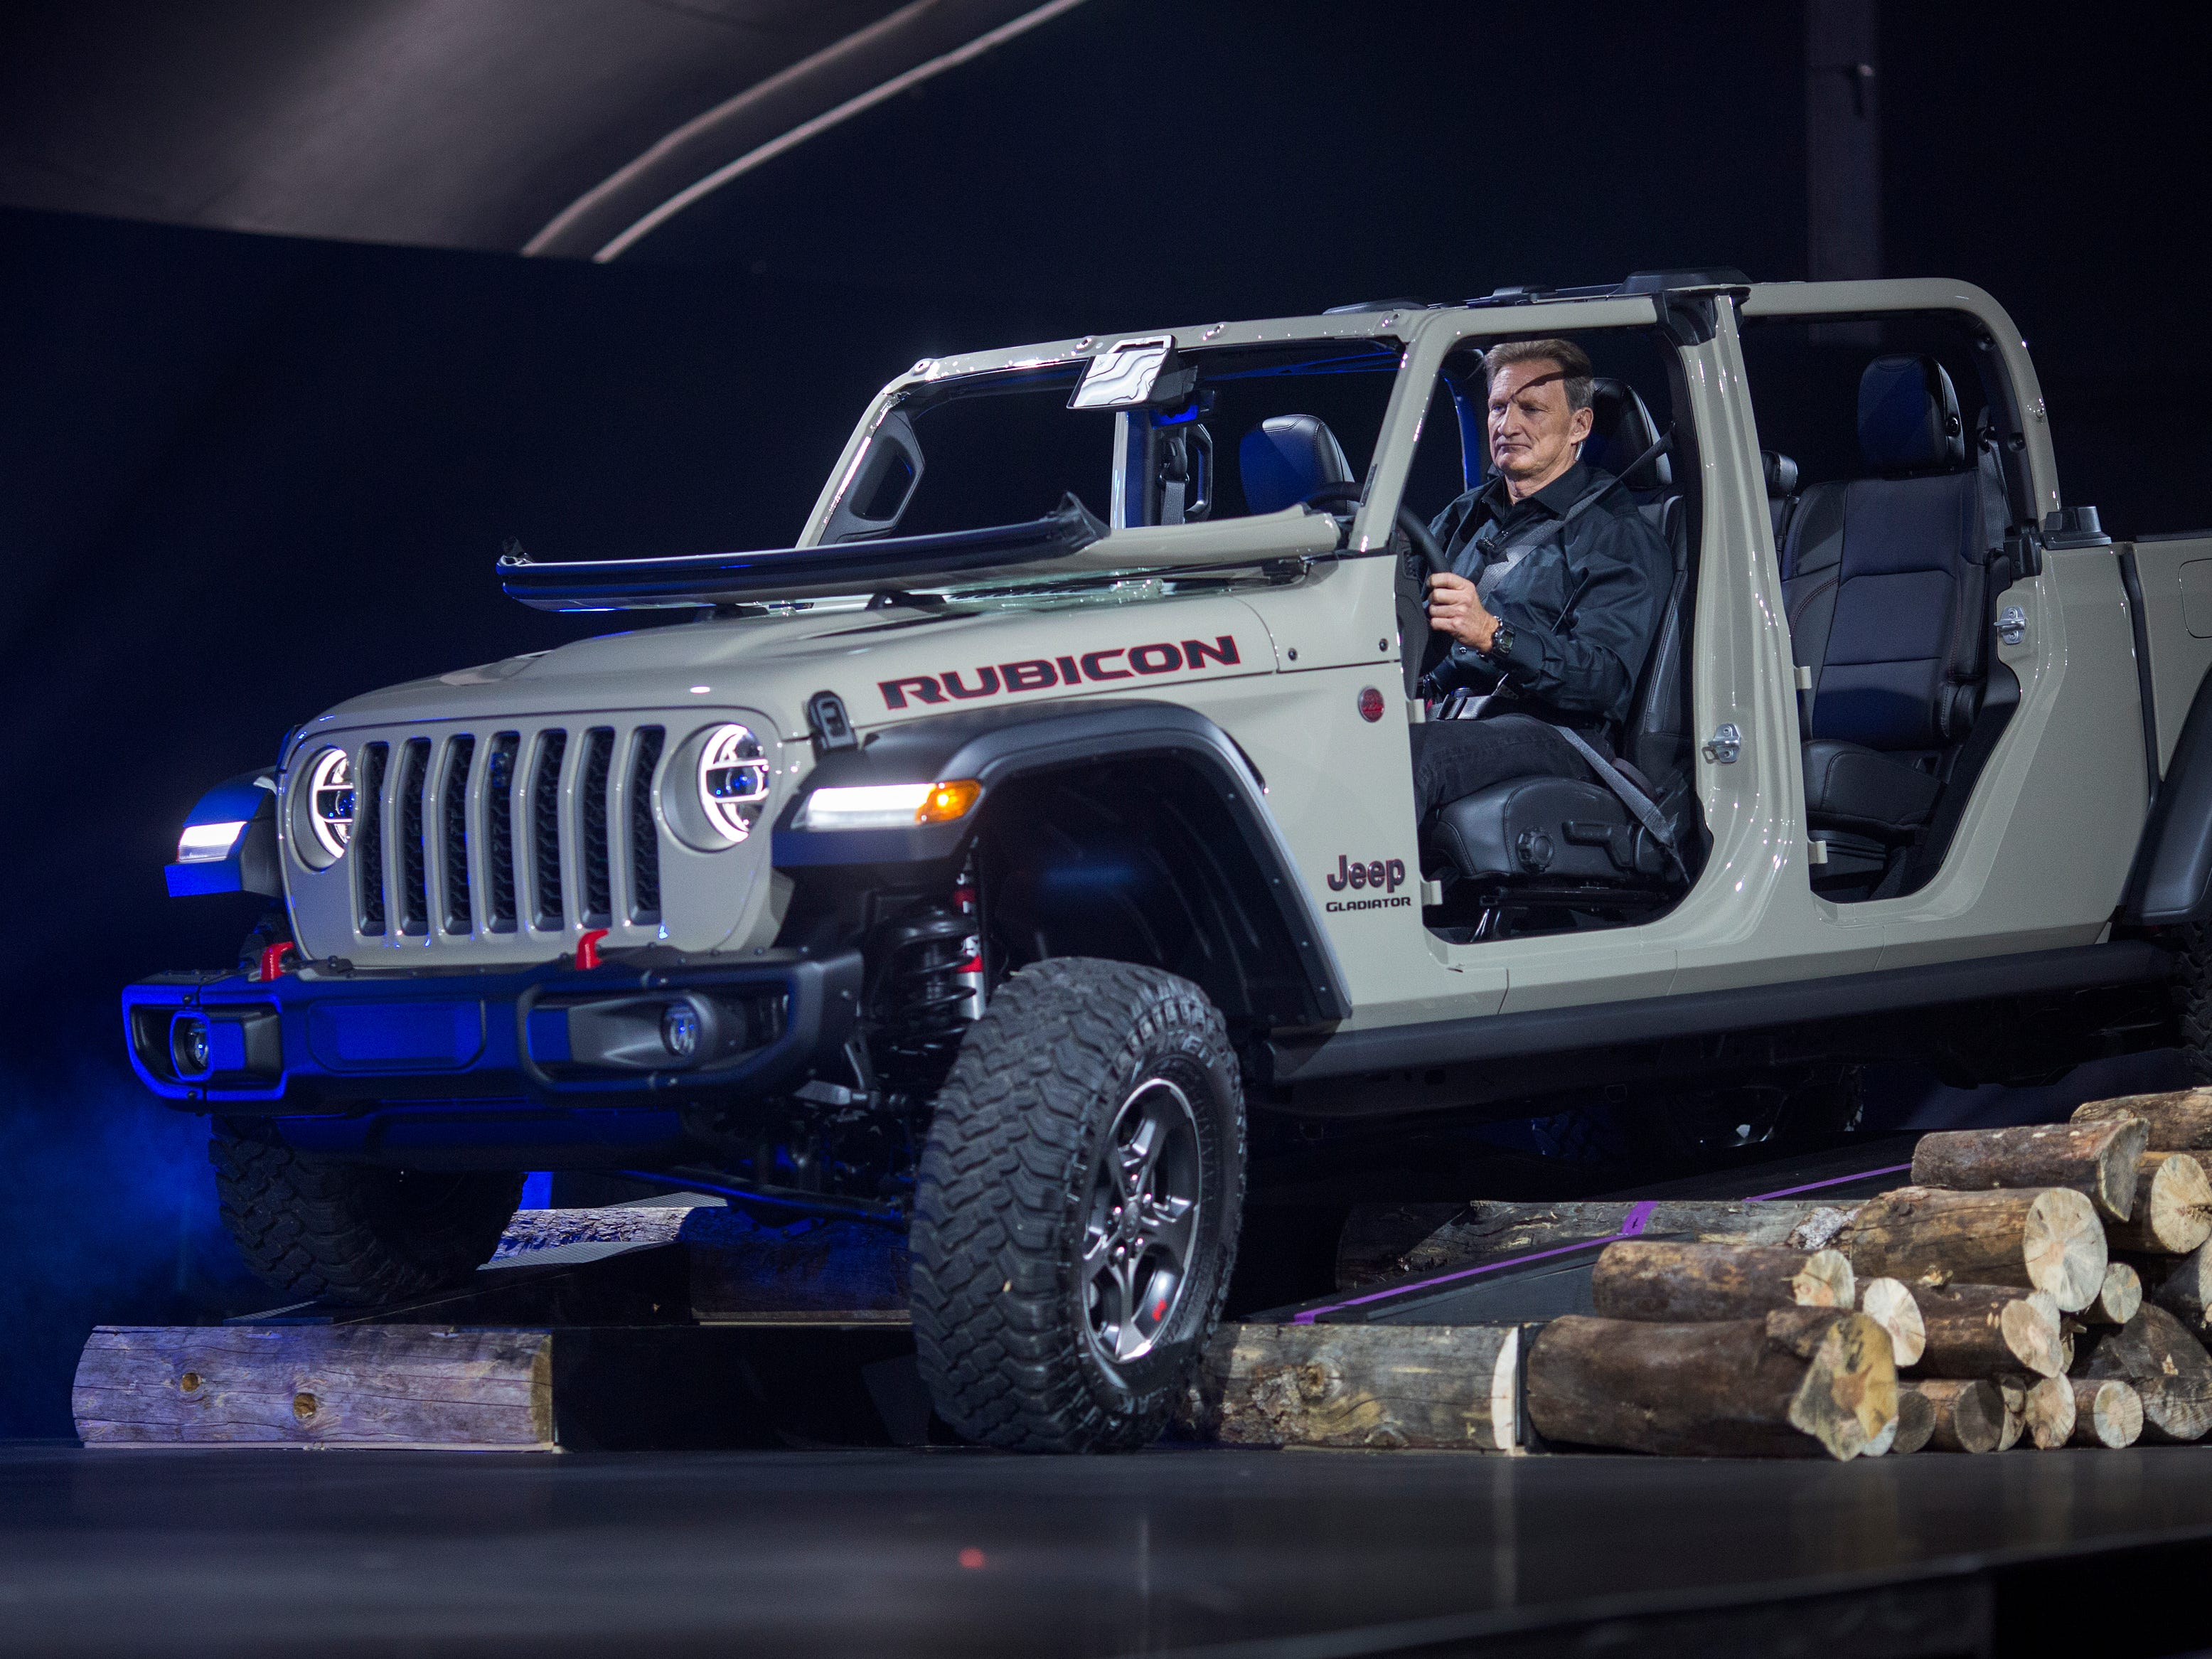 The Gladiator starts out, as you might expect, using a modified Wrangler platform, adding such Wrangler-like features as a fold-down windshield and removable doors. Look for a wide range of variants, including the off-road-ready Jeep Gladiator Rubicon, shown here.